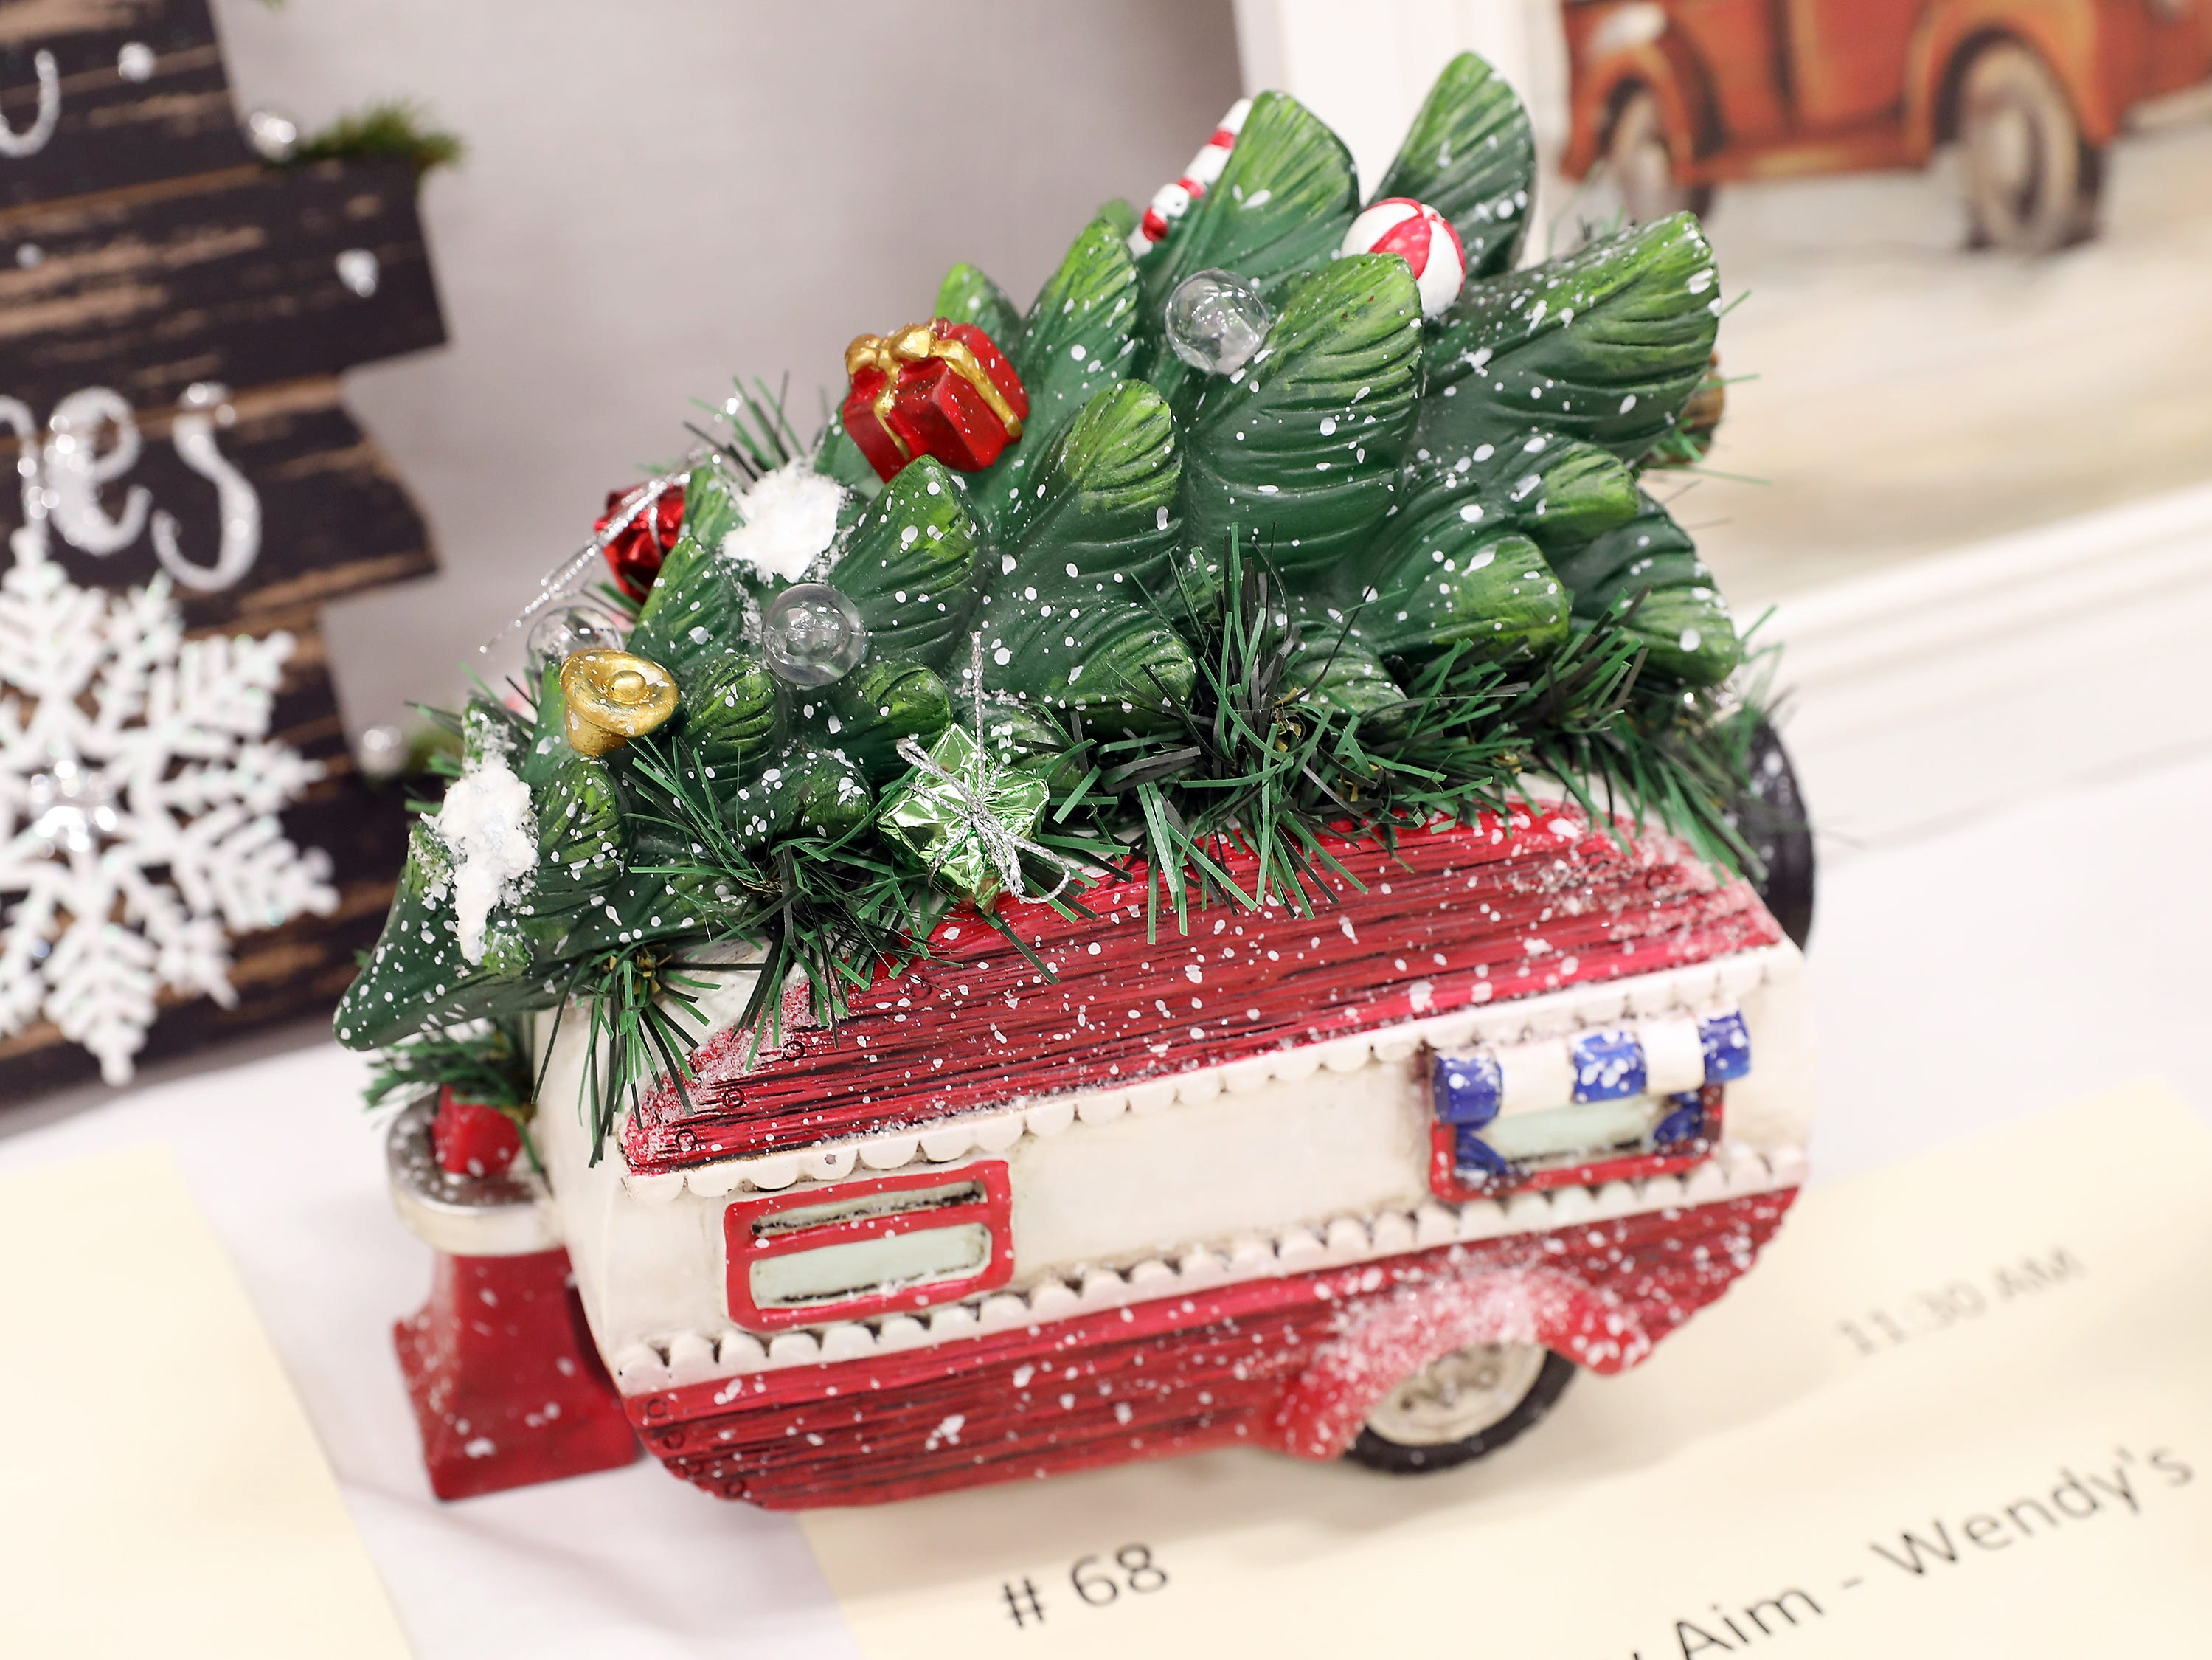 68	11:30 AM	Primary Aim - Wendy's	Other	A Camping Christmas	A cold cast ceramic vintage holiday camper, topped with a lighted tree shining with blue, green and red LED lights, along with packages for Clark and Cousin Eddie!		1 meal a month during 2019